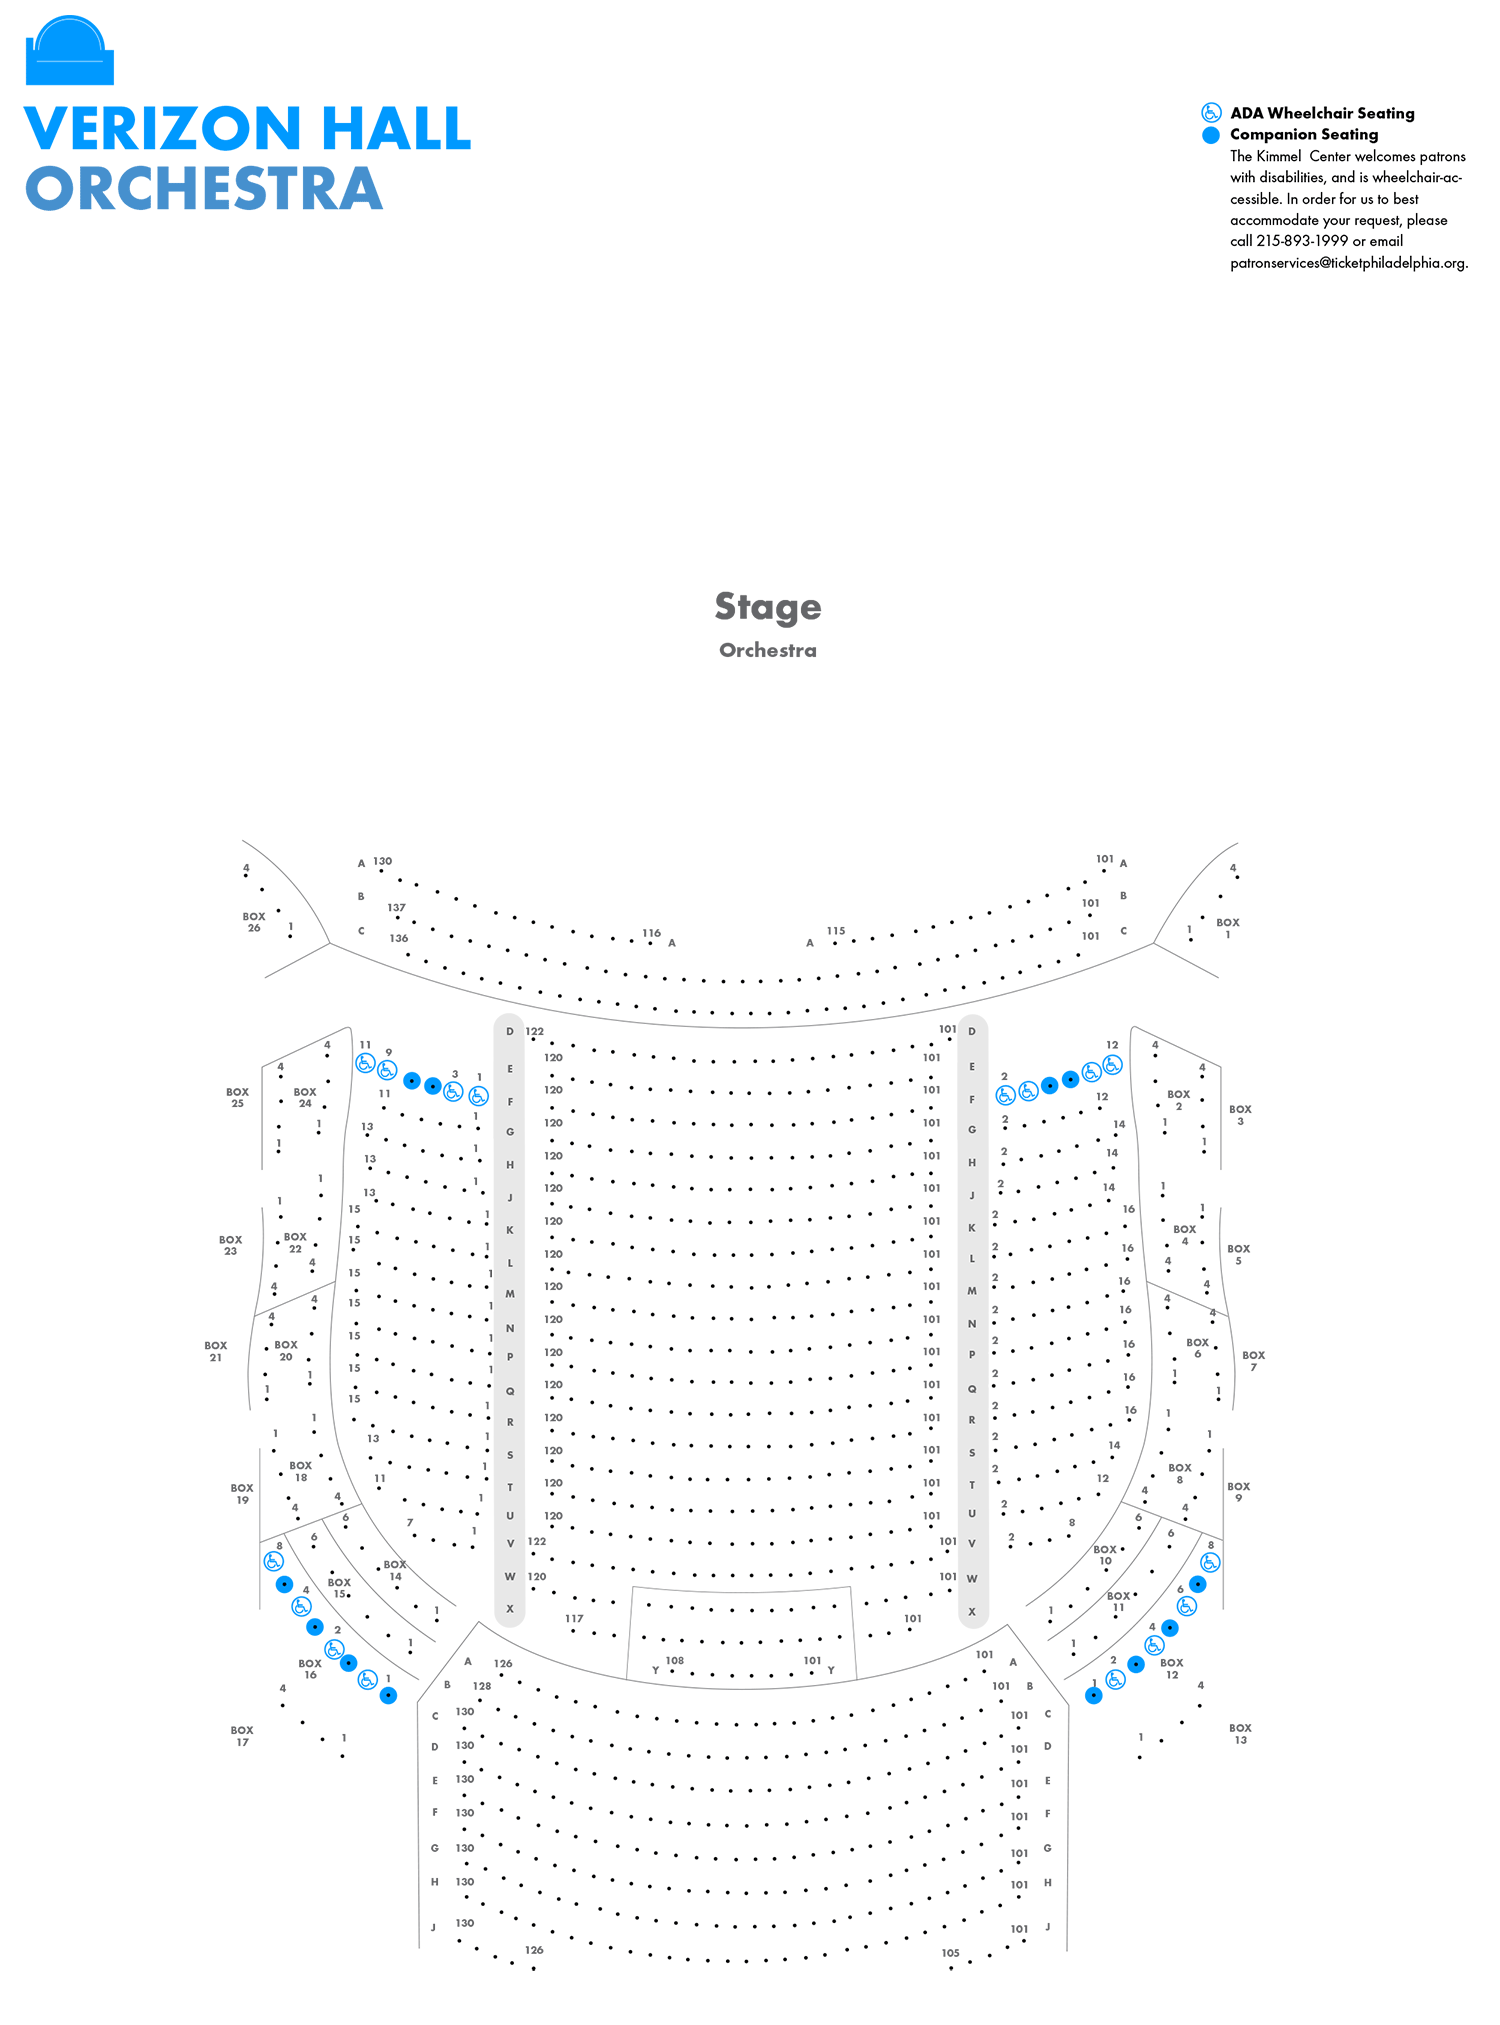 Image Of Verizon Hall Orchestra Level Seating Chart